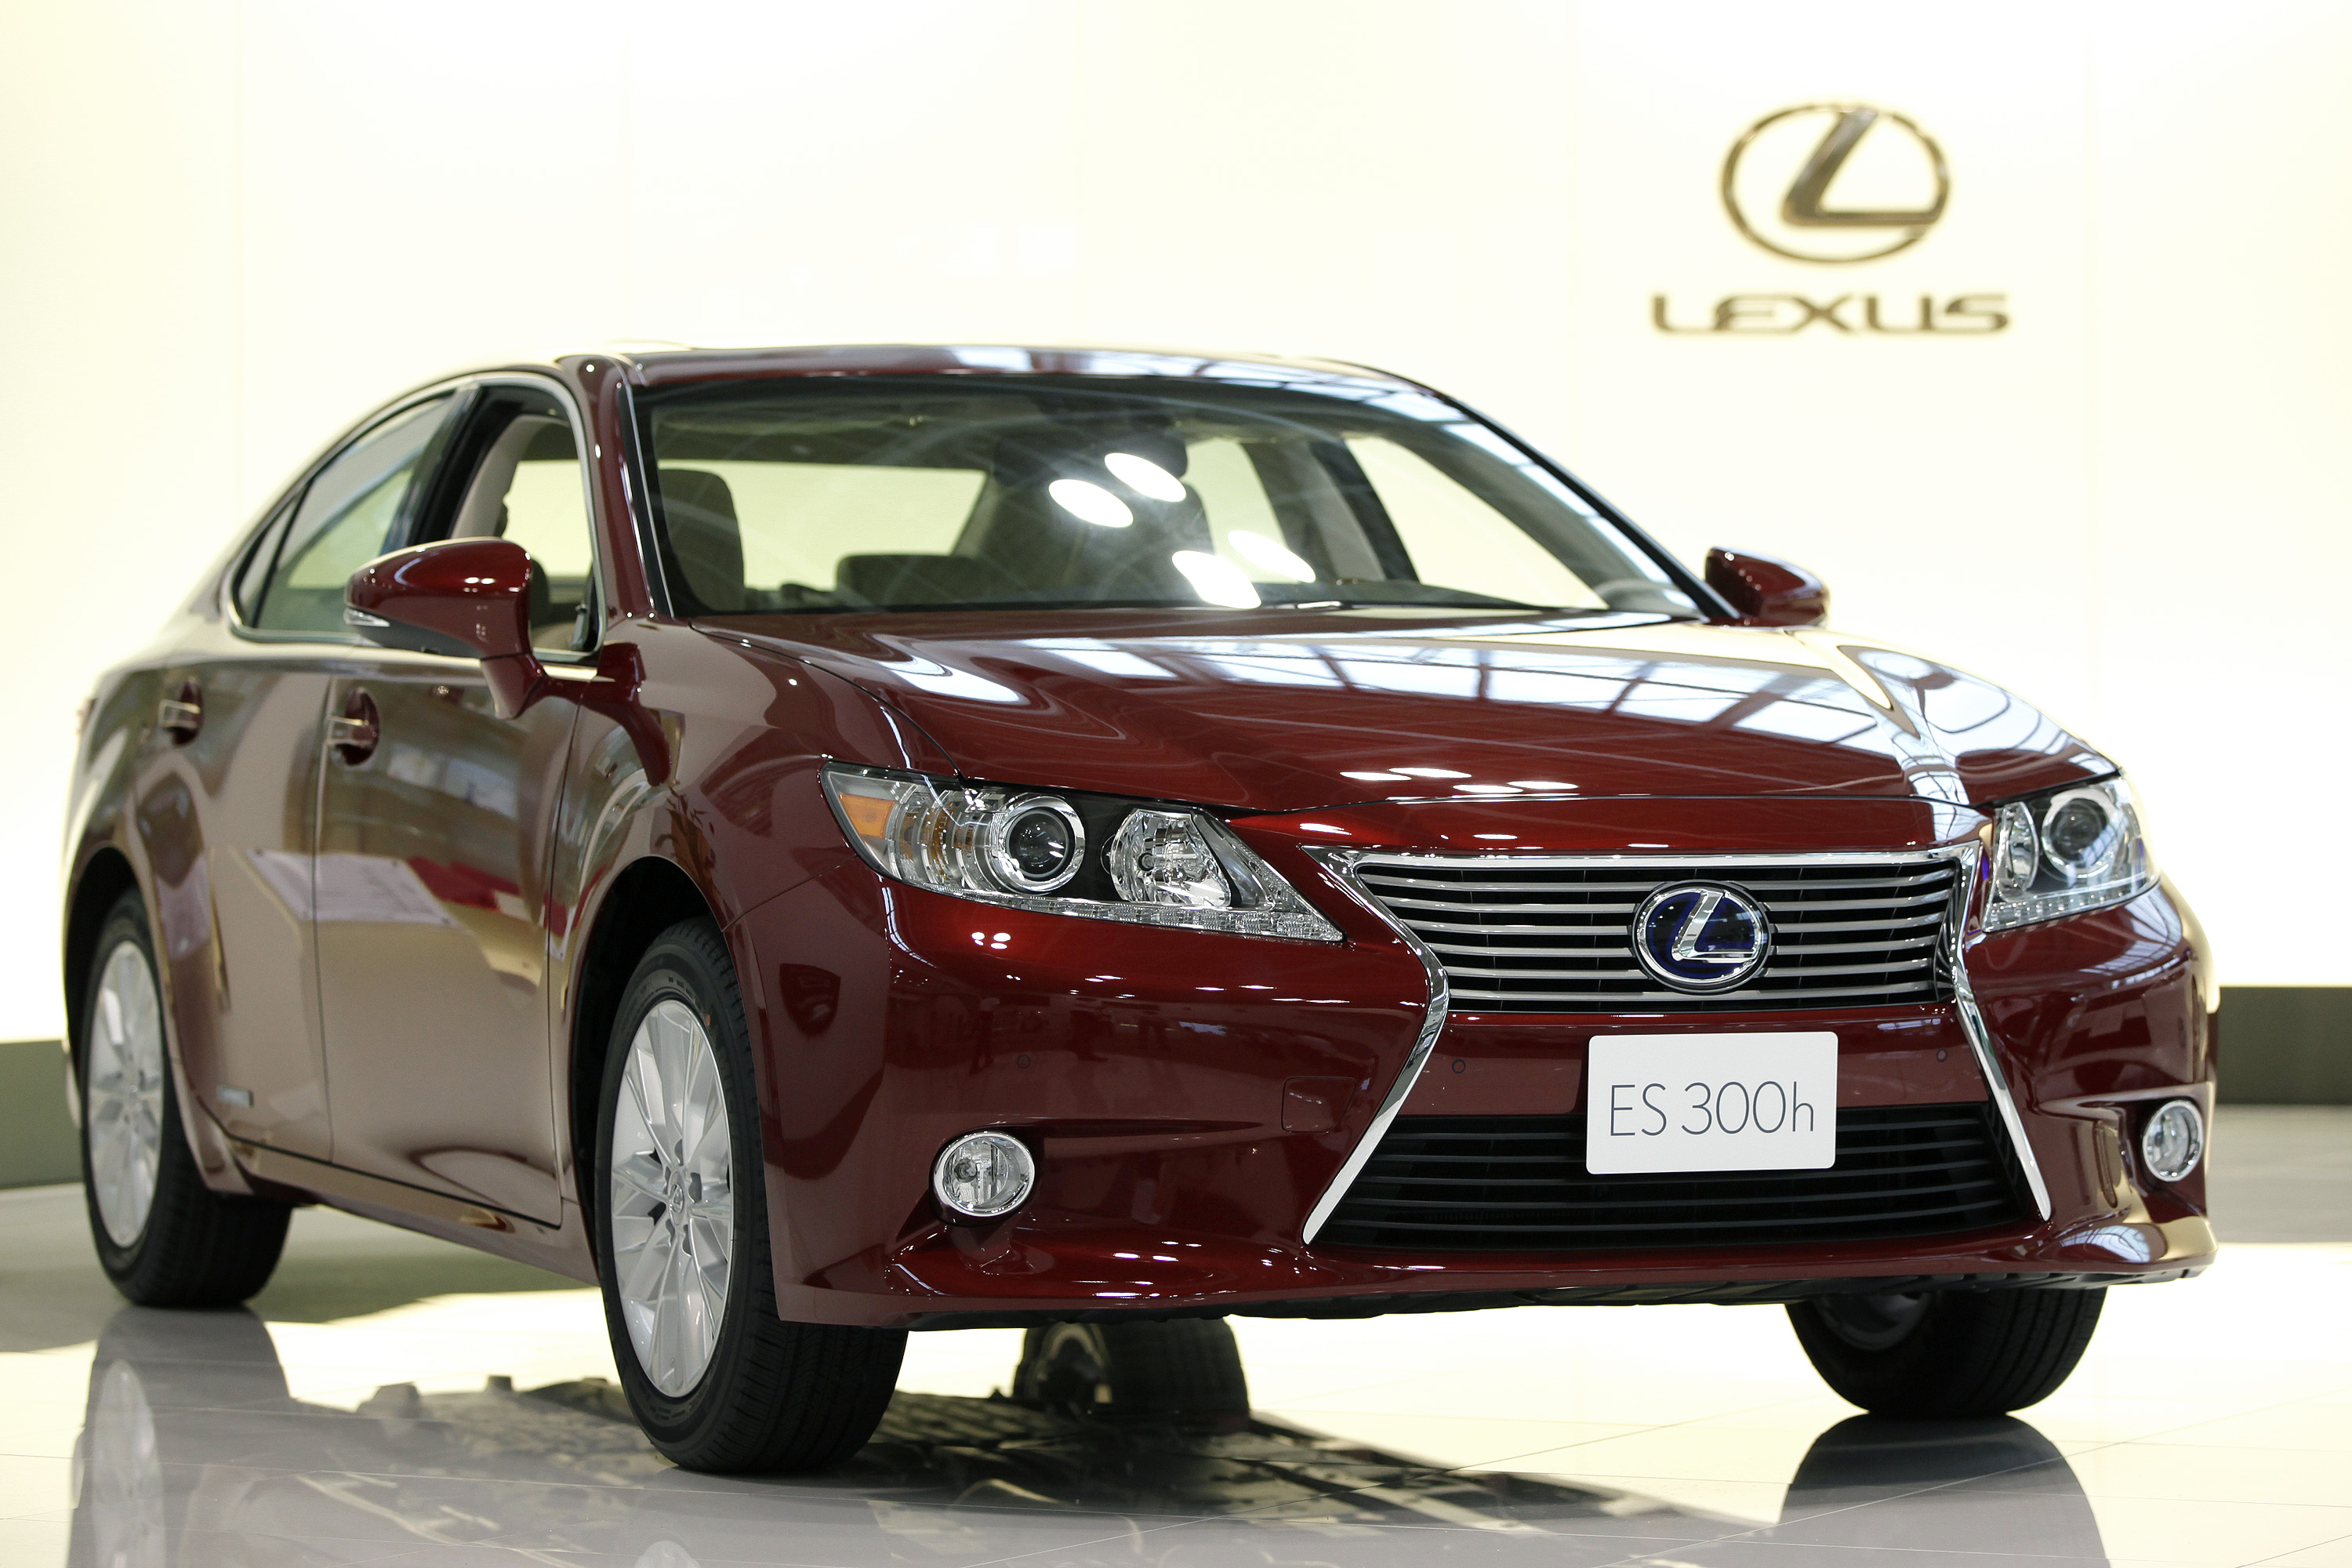 A Toyota Motor Corp. Lexus ES300h sedan is displayed in the visitor's center at Toyota Motor Kyushu Inc.'s Miyata plant in Miyawaka City, Fukuoka Prefecture, Japan, on Friday, July 6, 2012.